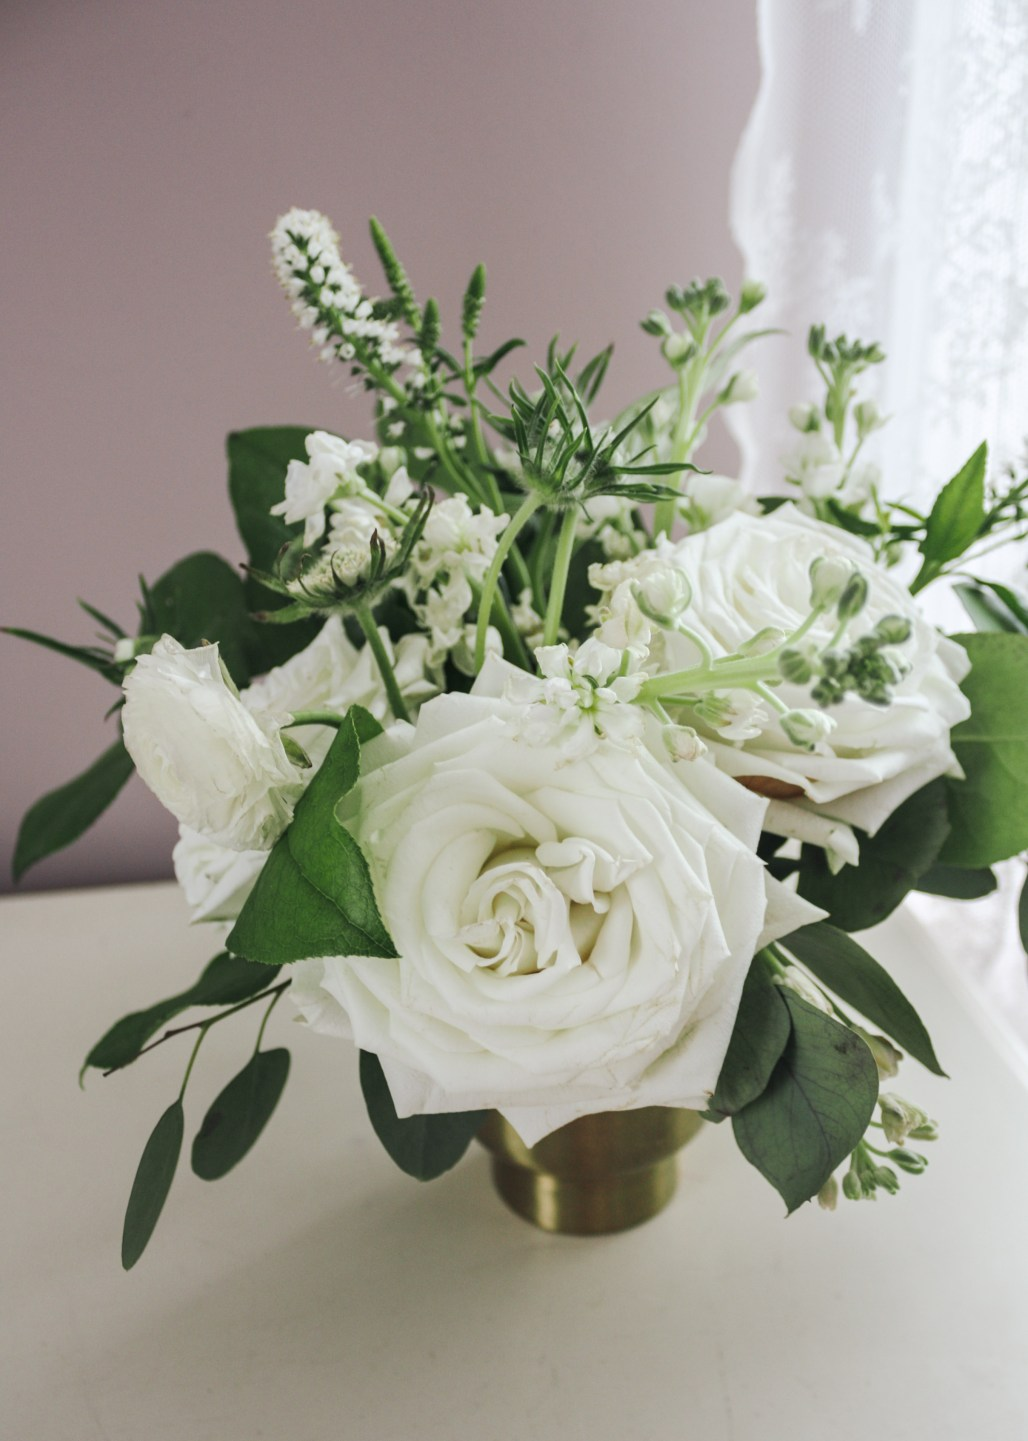 Floral Inspiration :: Greens & Whites for Any Season of the Year || Dreamery Events